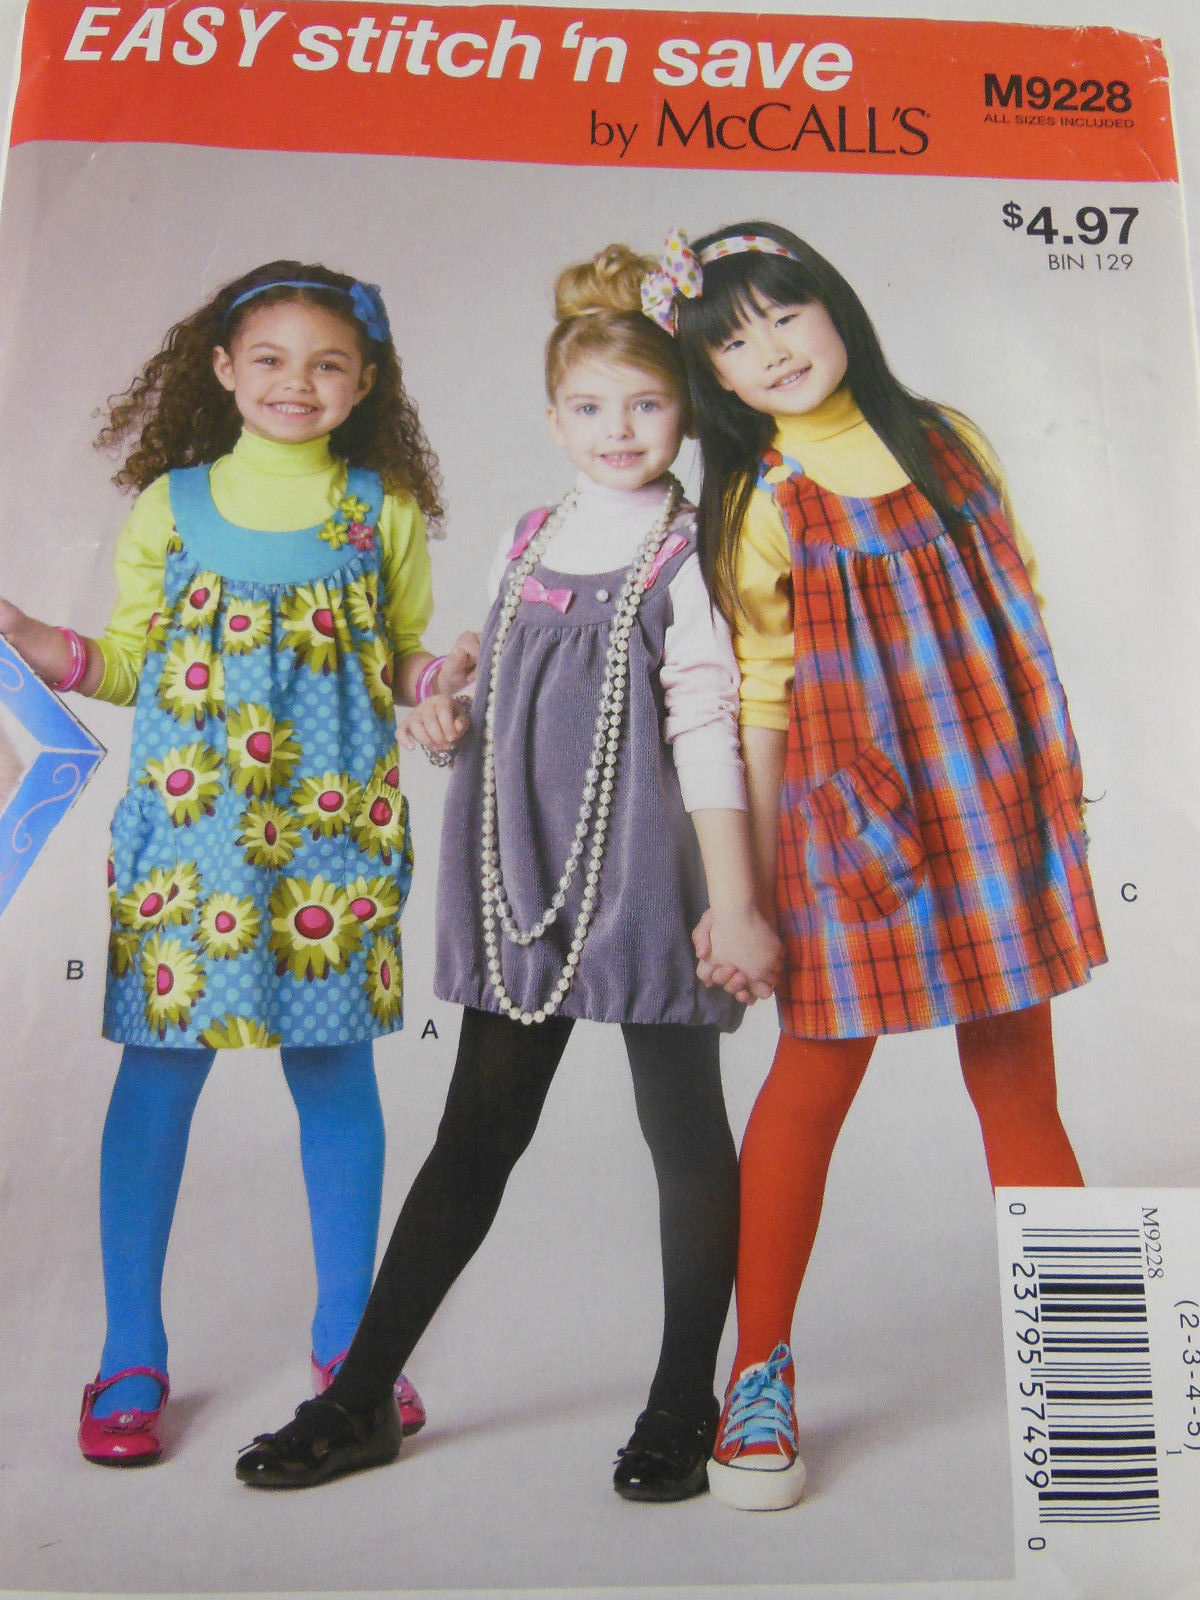 Primary image for NEW McCall's Easy Stitch and Save Kid's Jumper Pattern M9228 Size 2 3 4 5 child